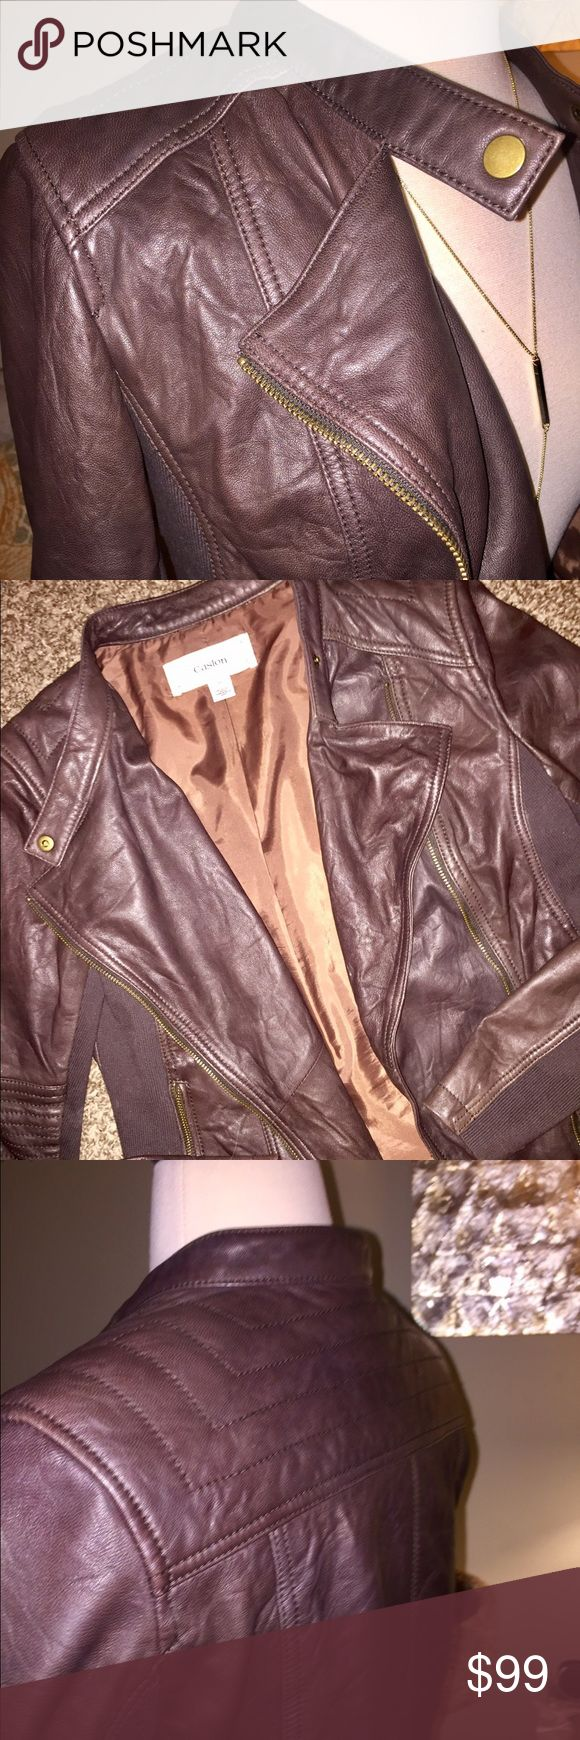 XS Premium Lambskin Leather Jacket XS Premium 100% lambskin leather jacket with lining. This jacket is incredibly soft and tailored well, but It's sadly too small for me. Bought at Nordstrom last winter for $300.00 Caslon Jackets & Coats